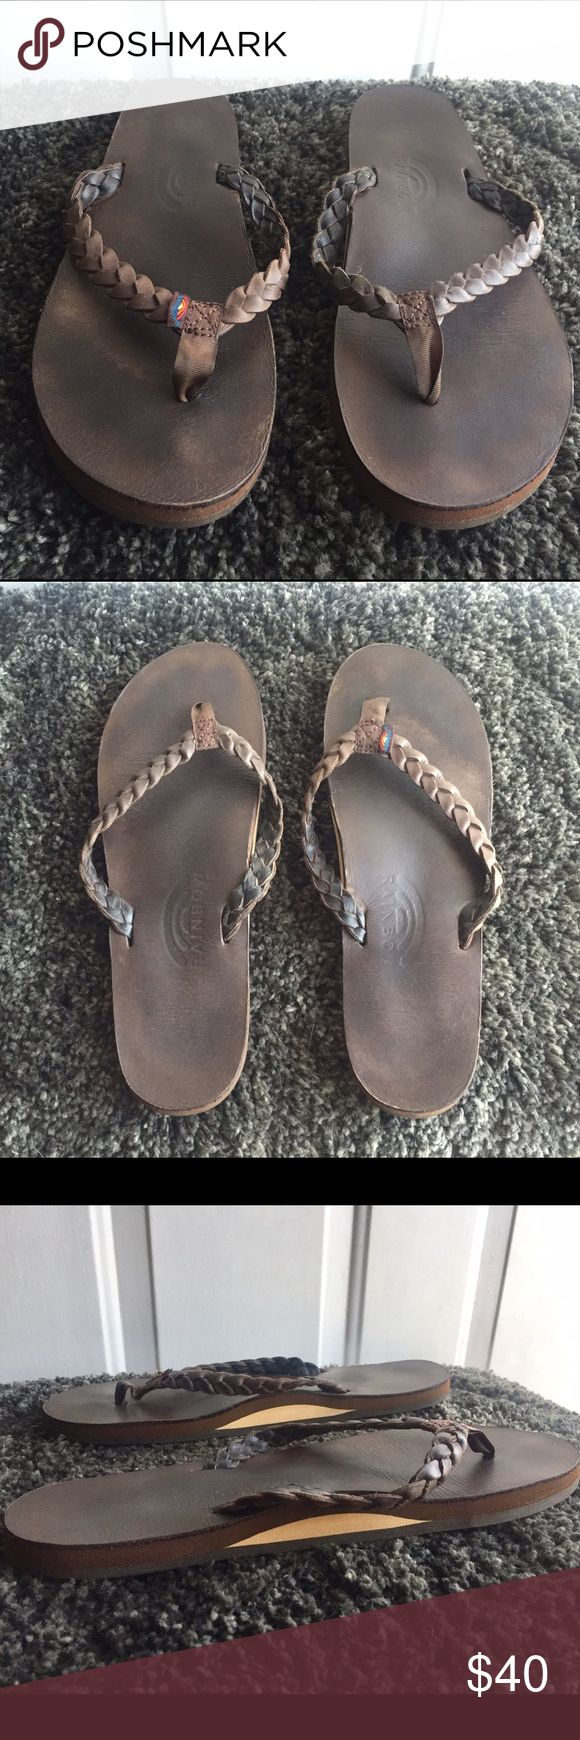 "Rainbow Sandals - Twisted Sister 🌈 These are the ""Twister Sister"" Women's Dark Brown Rainbow Sandals in Dark Brown Leather. Worn only a few times. Like new condition. Women's size Large (7.5 - 8.5) I'm a size 8. Rainbow Shoes Sandals"